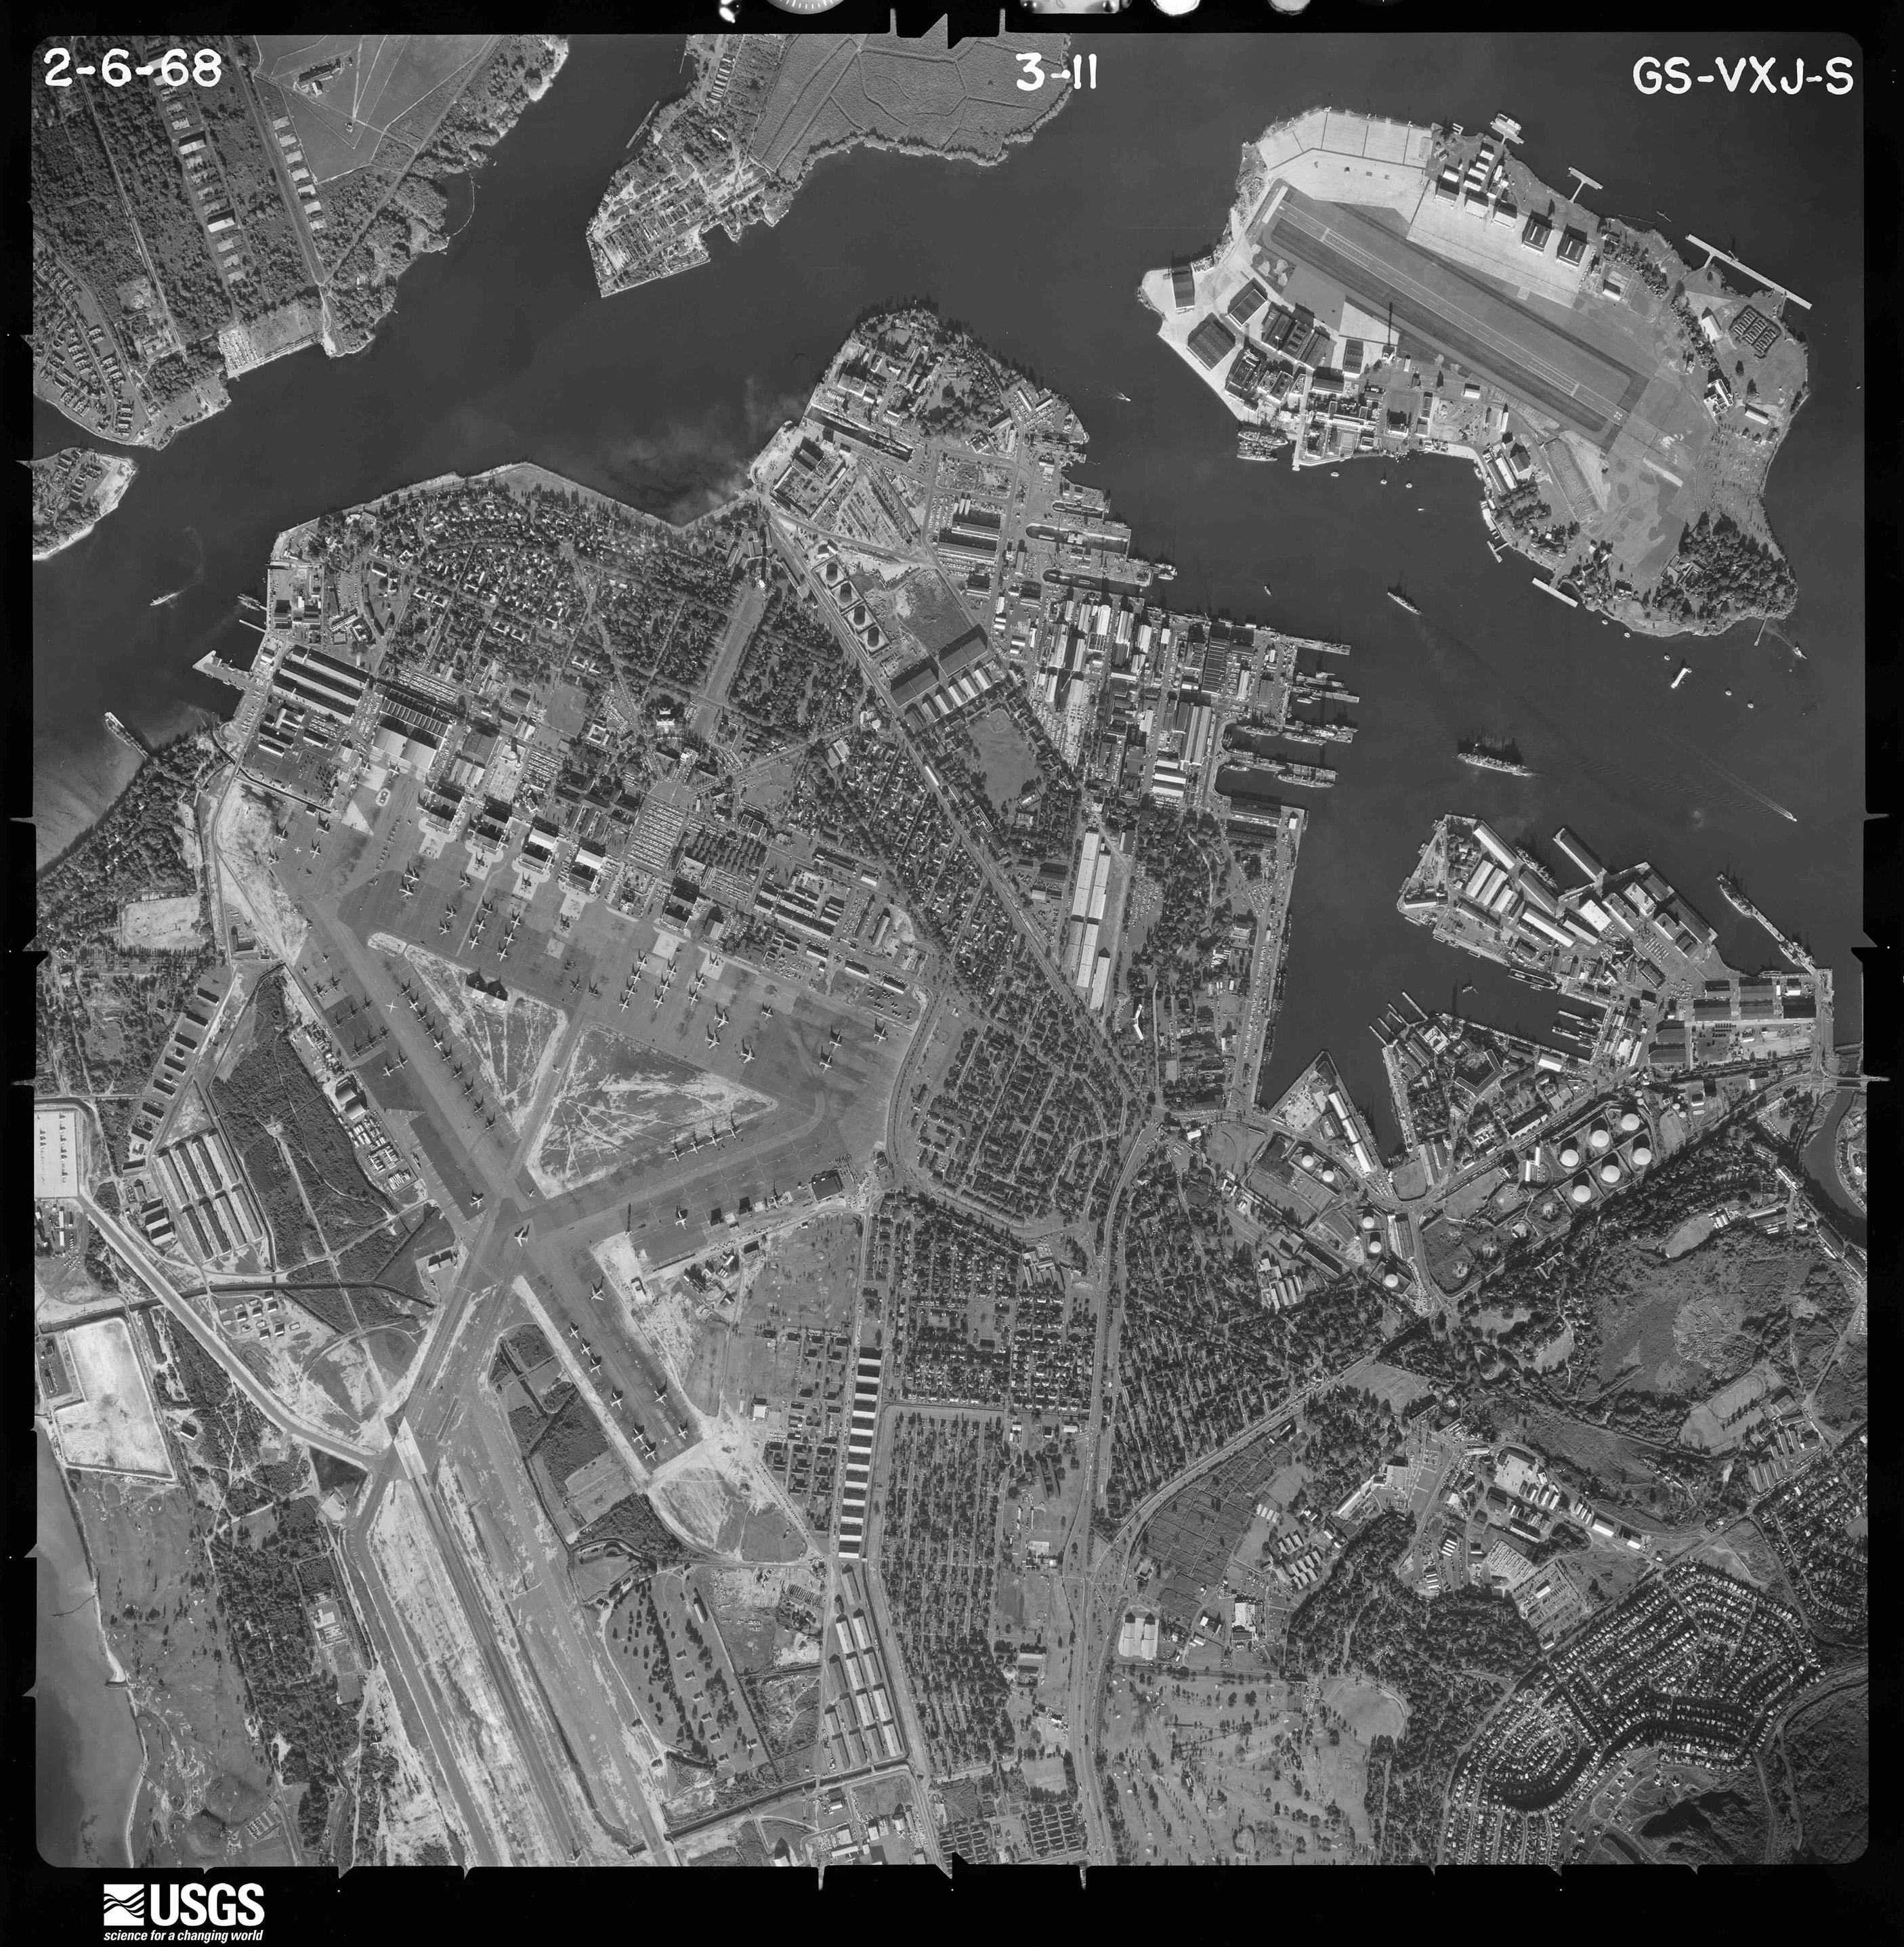 Aerial photograph of Hickam AFB and Ford Island, 1968